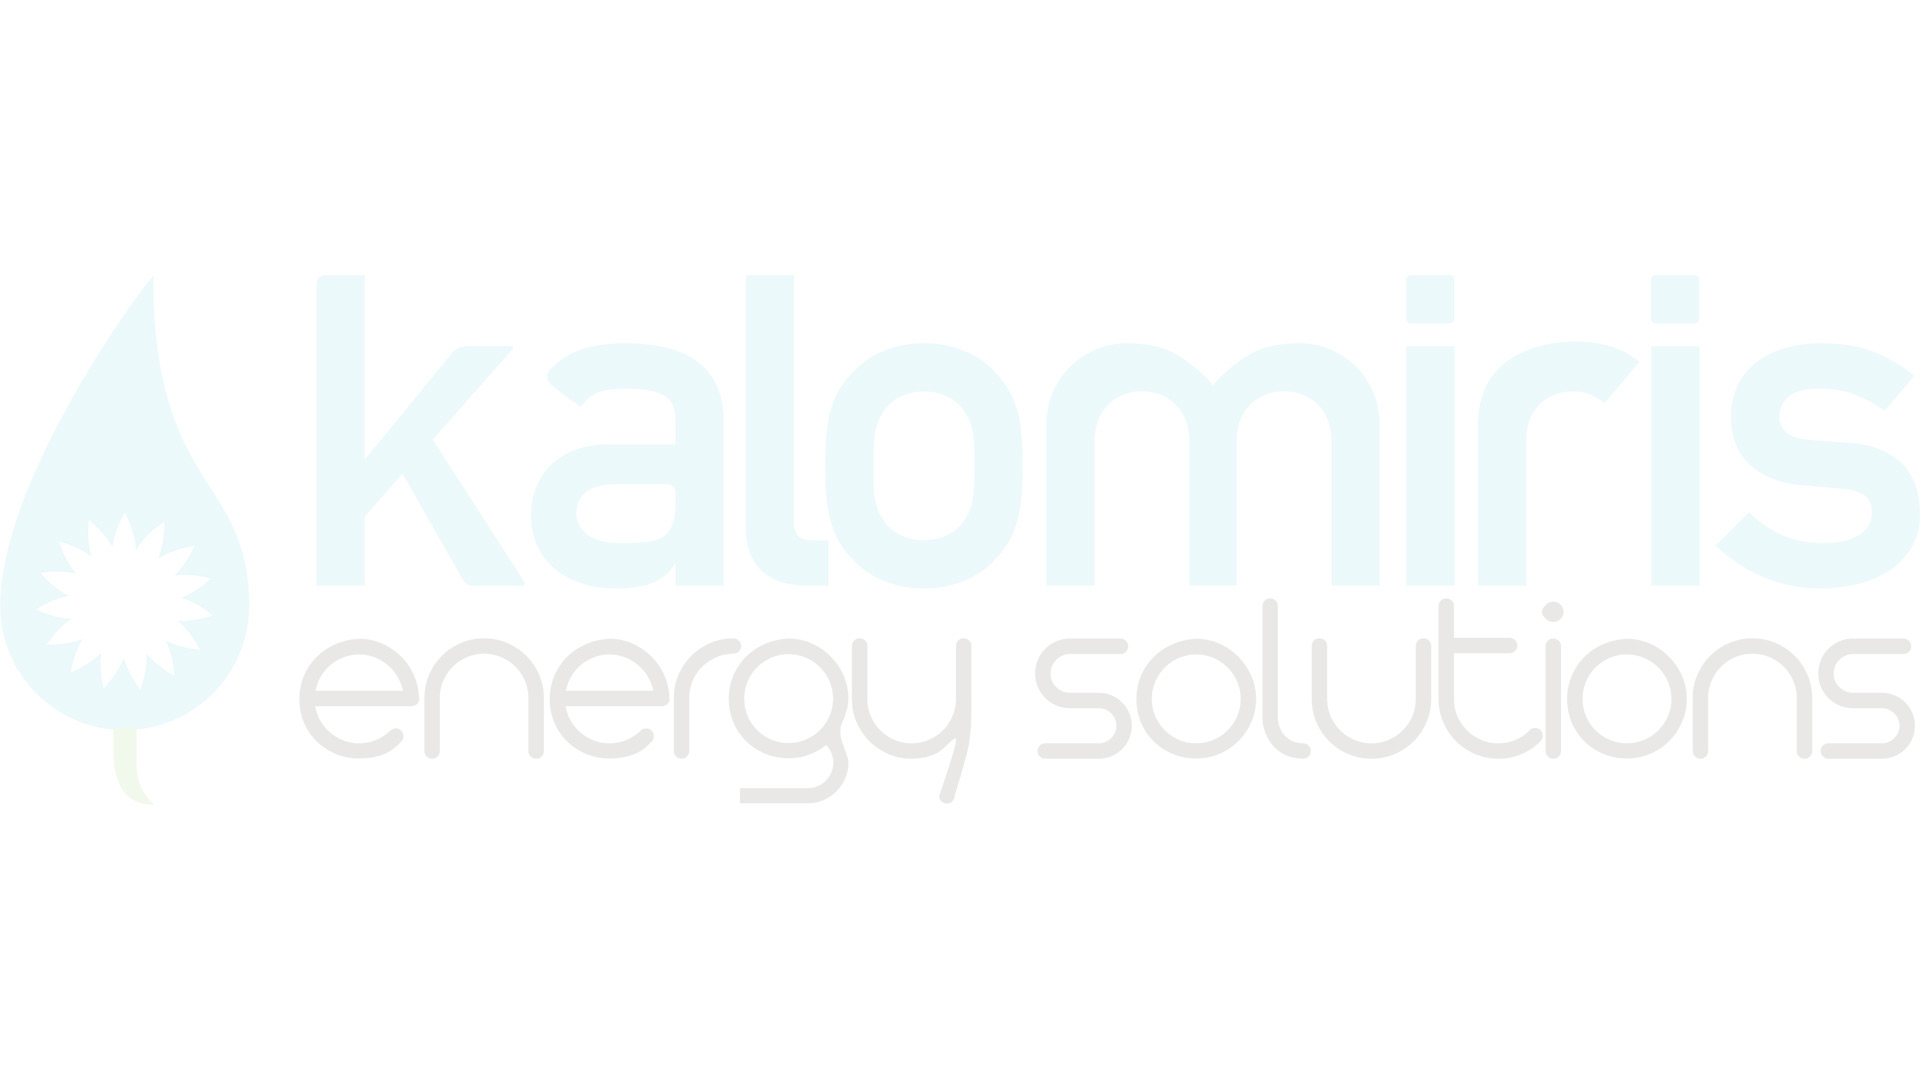 Ceiling Fan CASAFAN CLASSIC ROYAL 180 BN Lacquer white / Light Gray 71 (180cm)